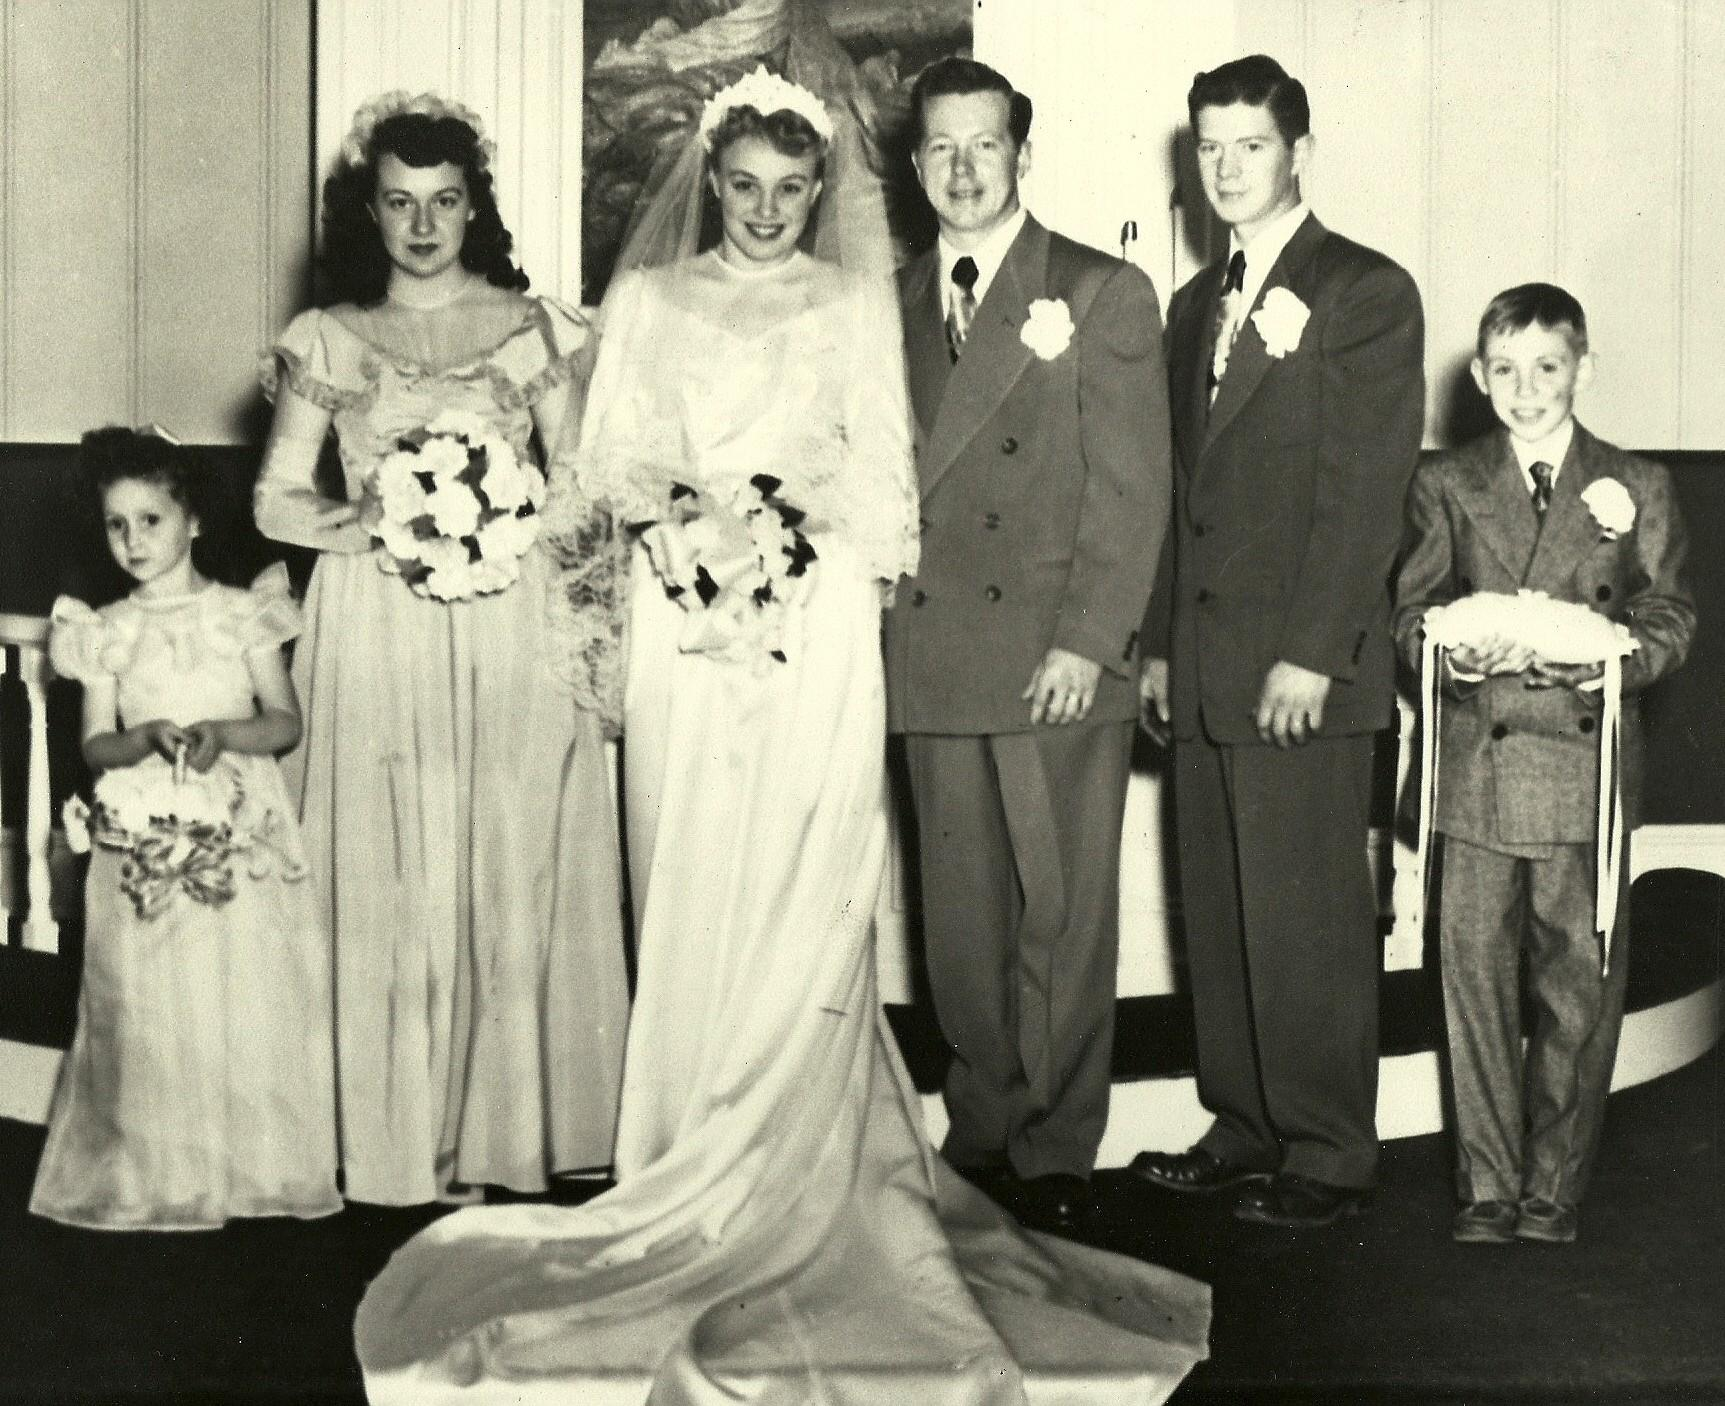 Vernon and Maries' wedding picture